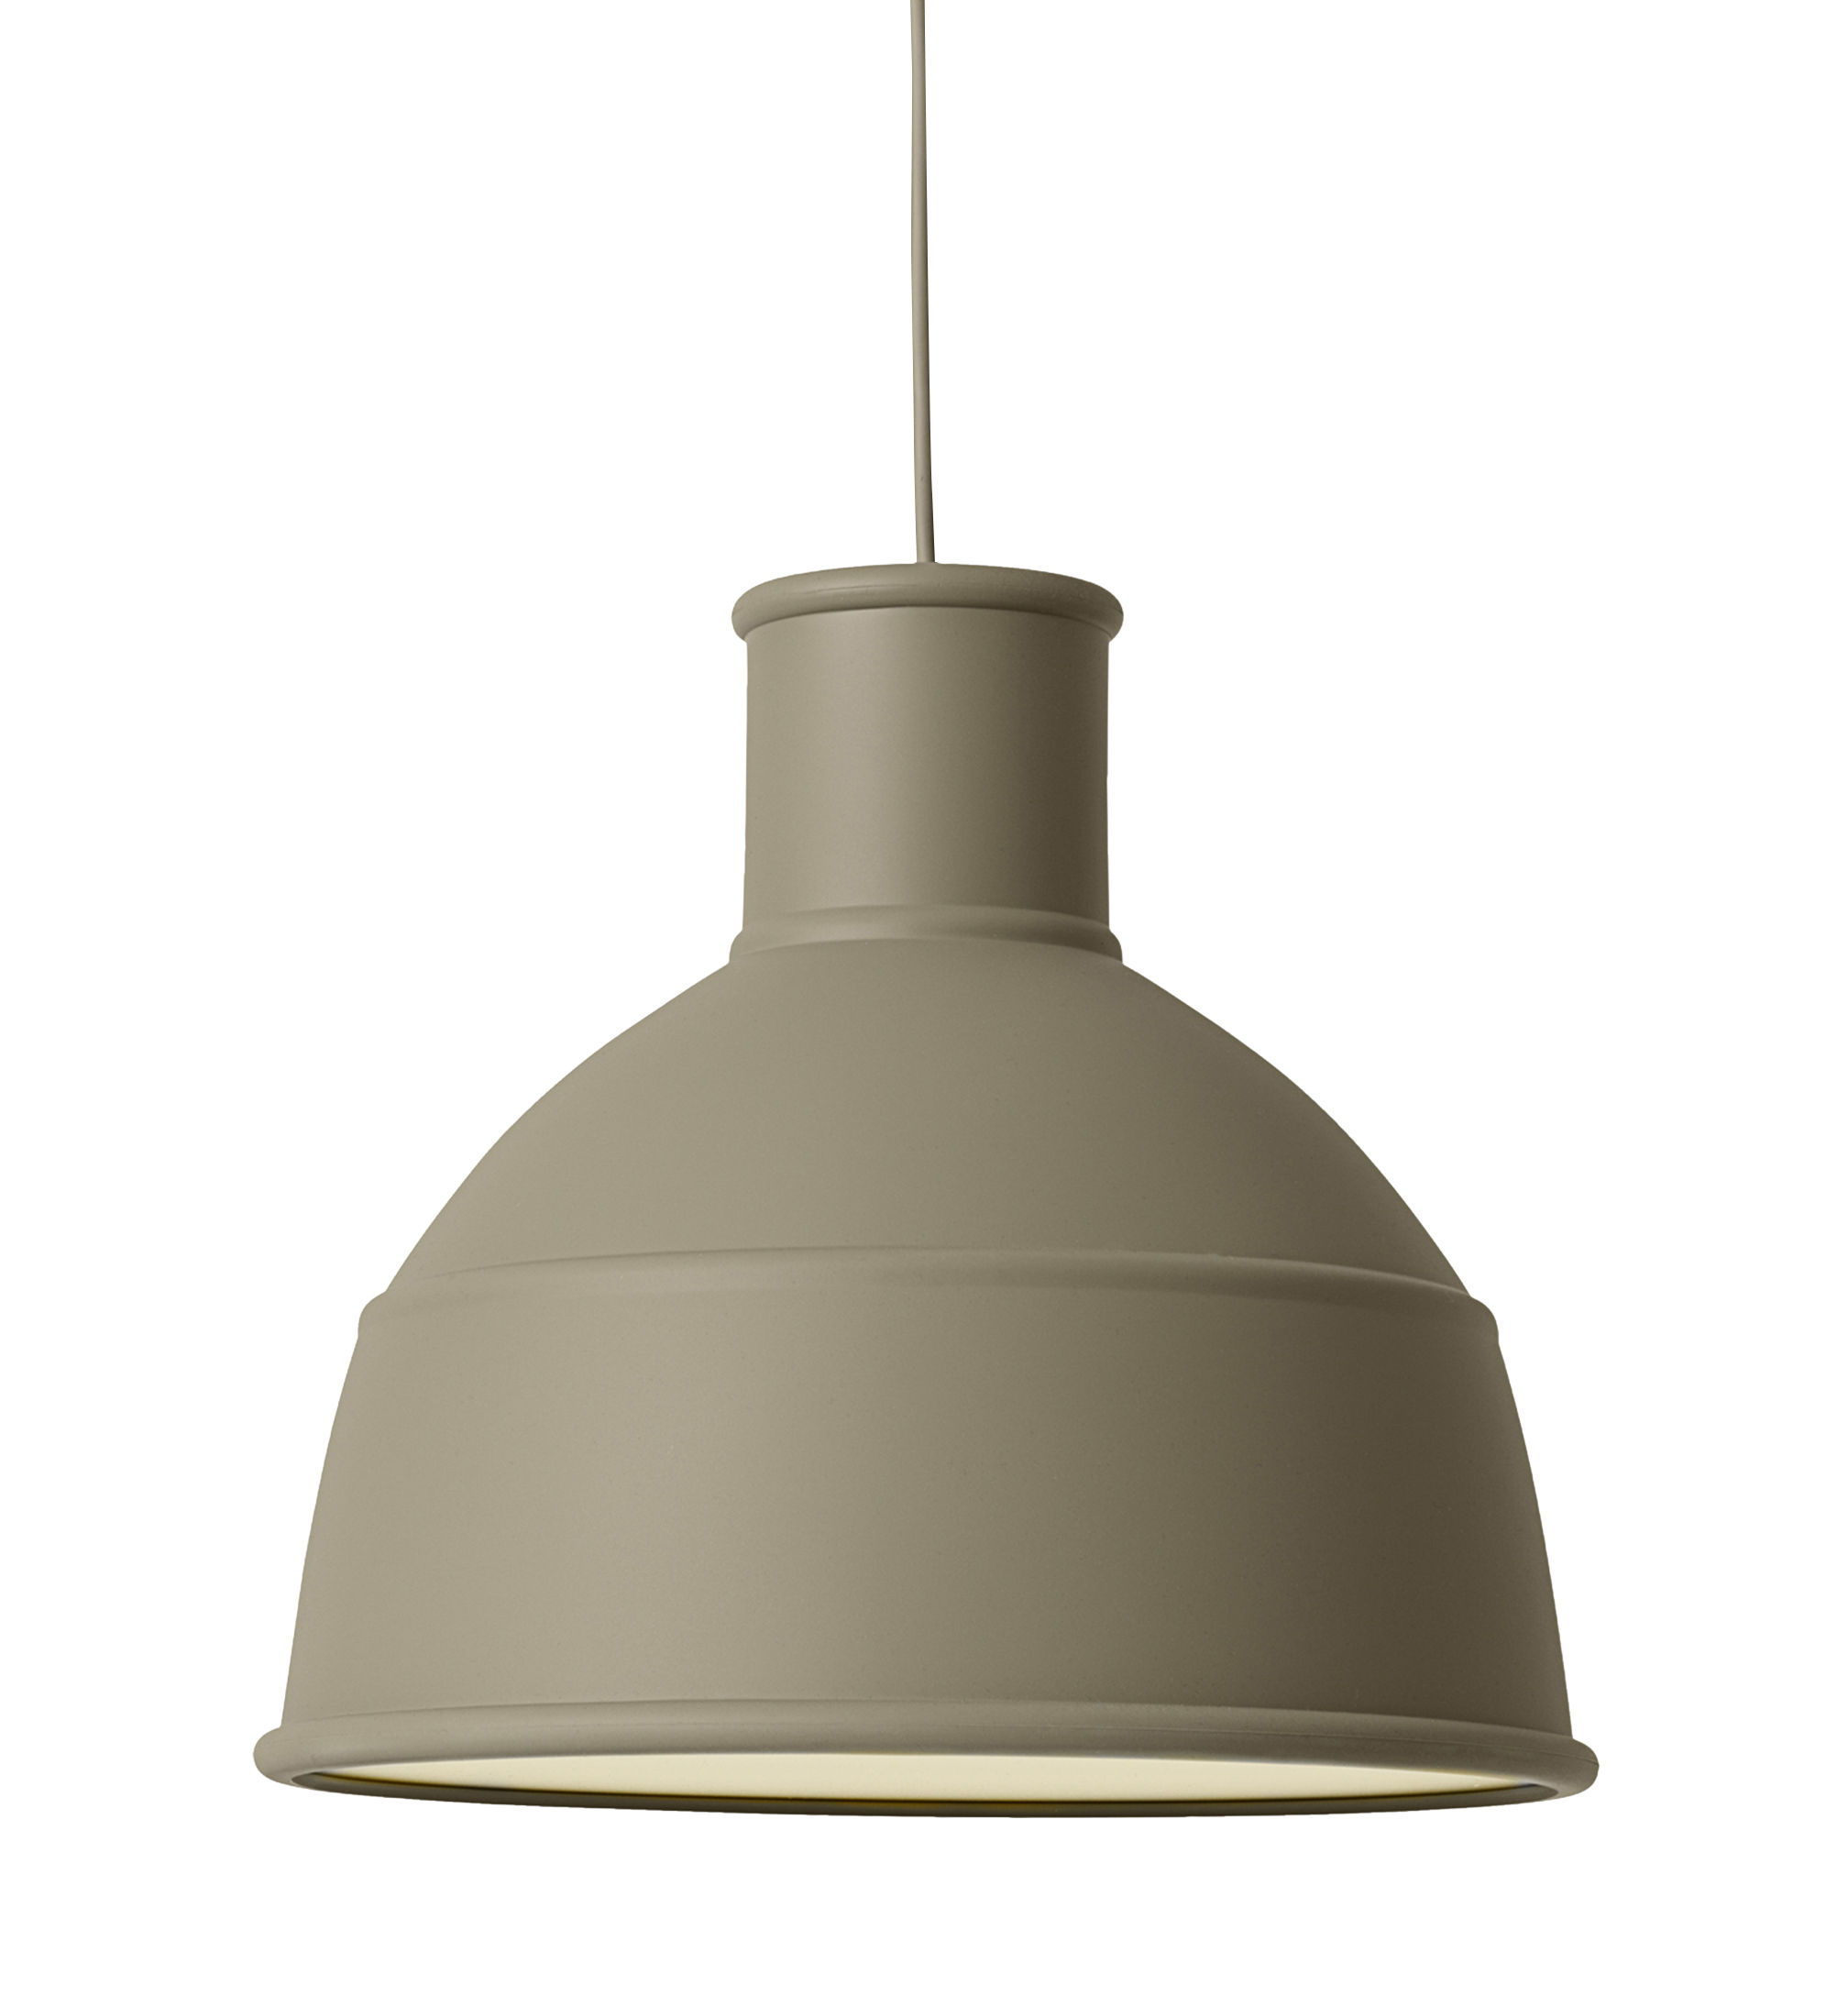 Luminaire - Suspensions - Suspension Unfold / en silicone - Muuto - Vert olive - Silicone